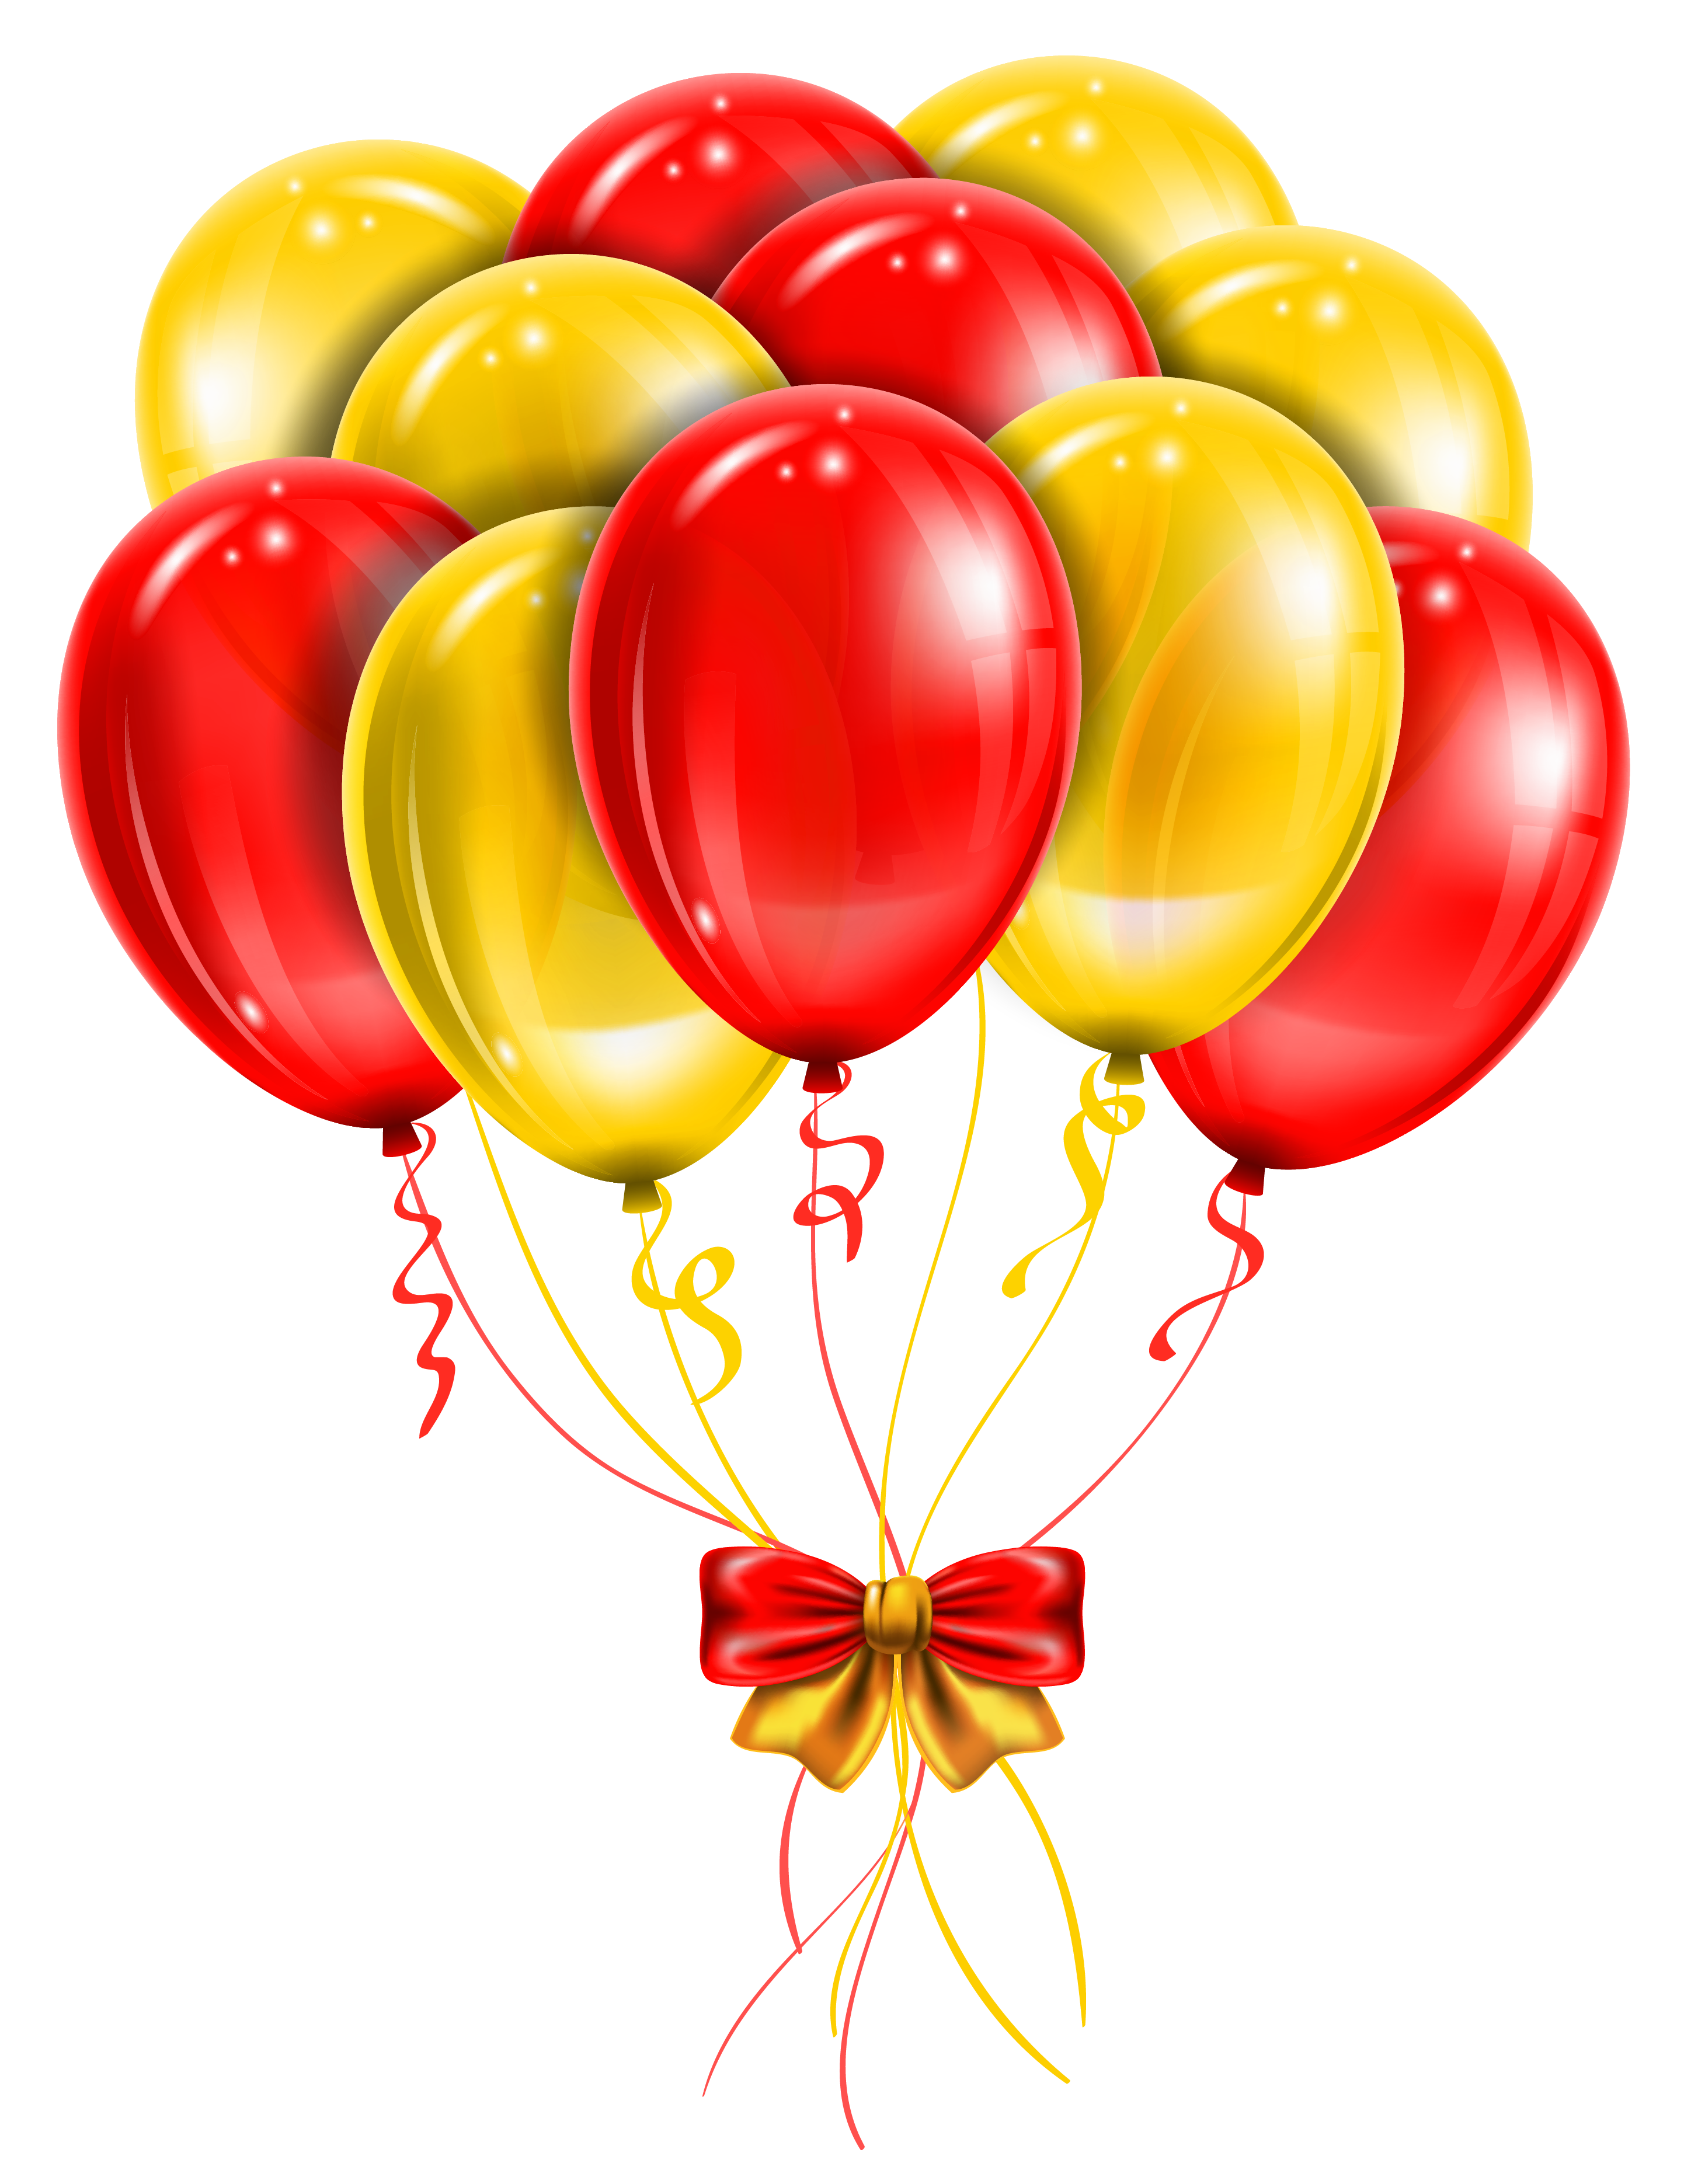 Clipart balloon yellow. Transparent red balloons png